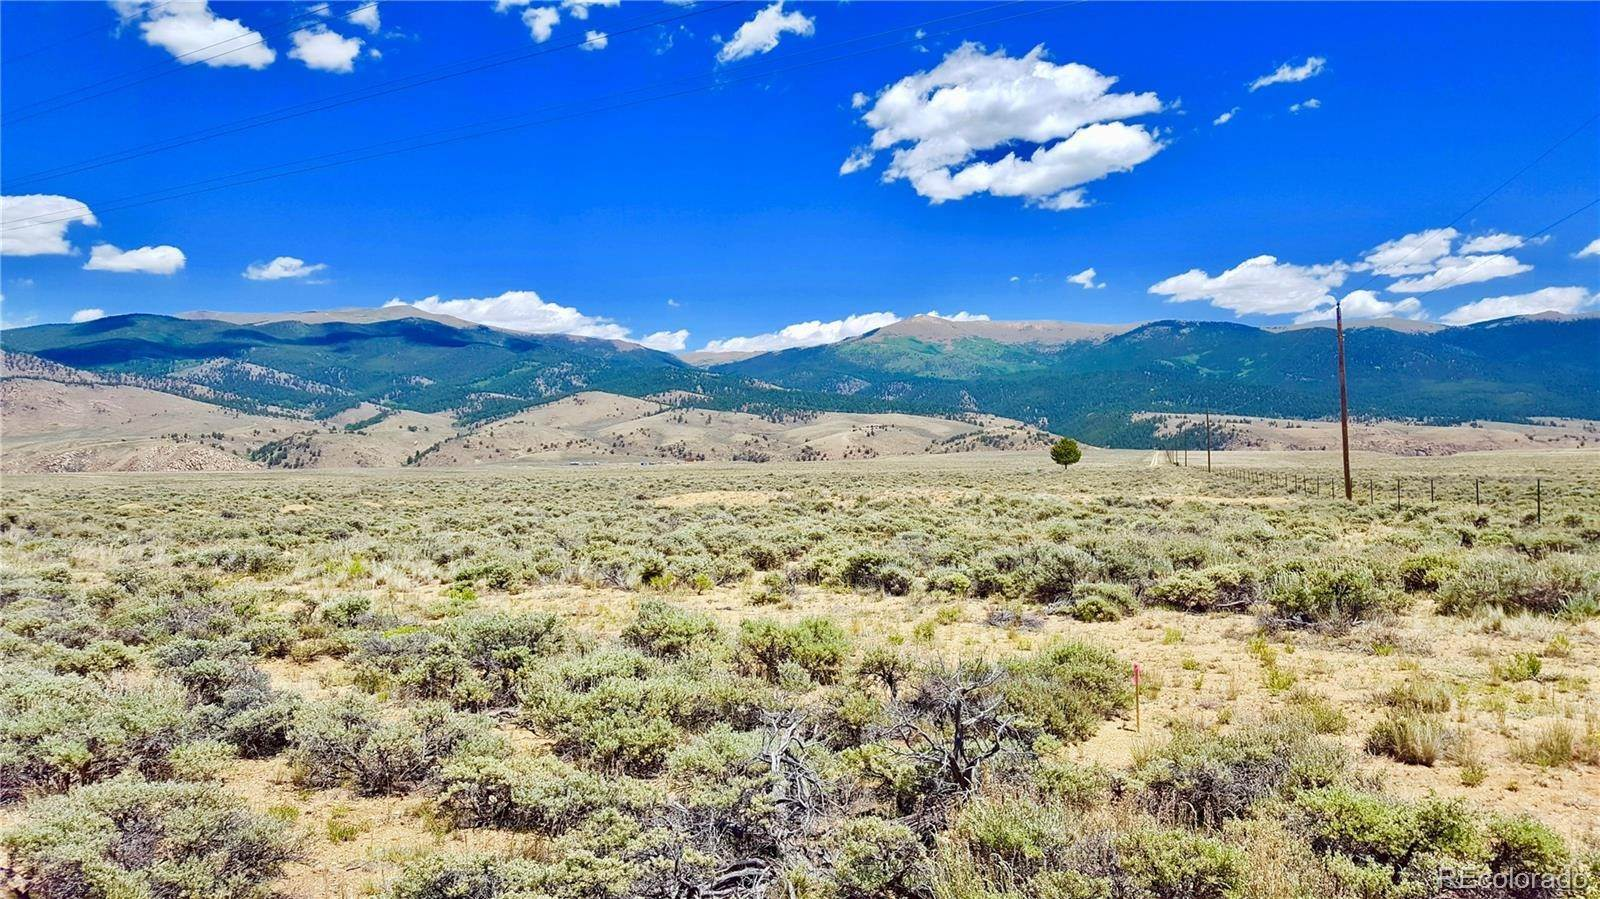 Land for Sale at Prcl 14 Trct 2 Twin Lakes, Colorado 81251 United States